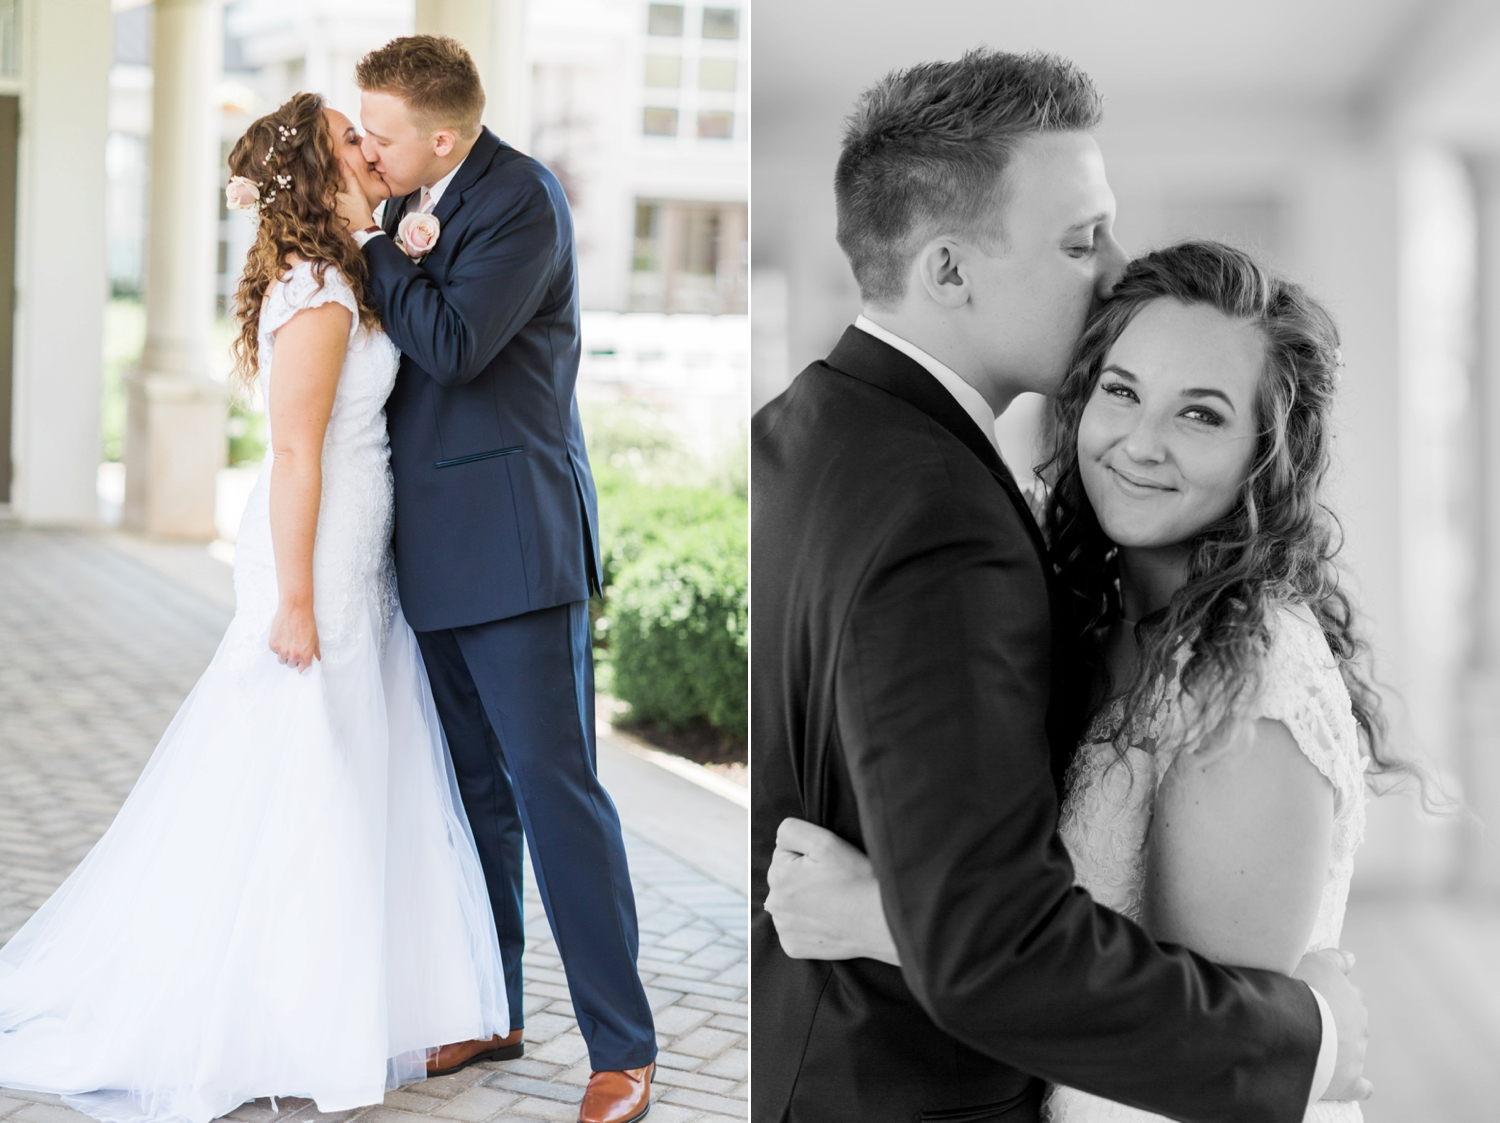 Community_Life_Center_Indianapolis_Indiana_Wedding_Photographer_Chloe_Luka_Photography_6874.jpg